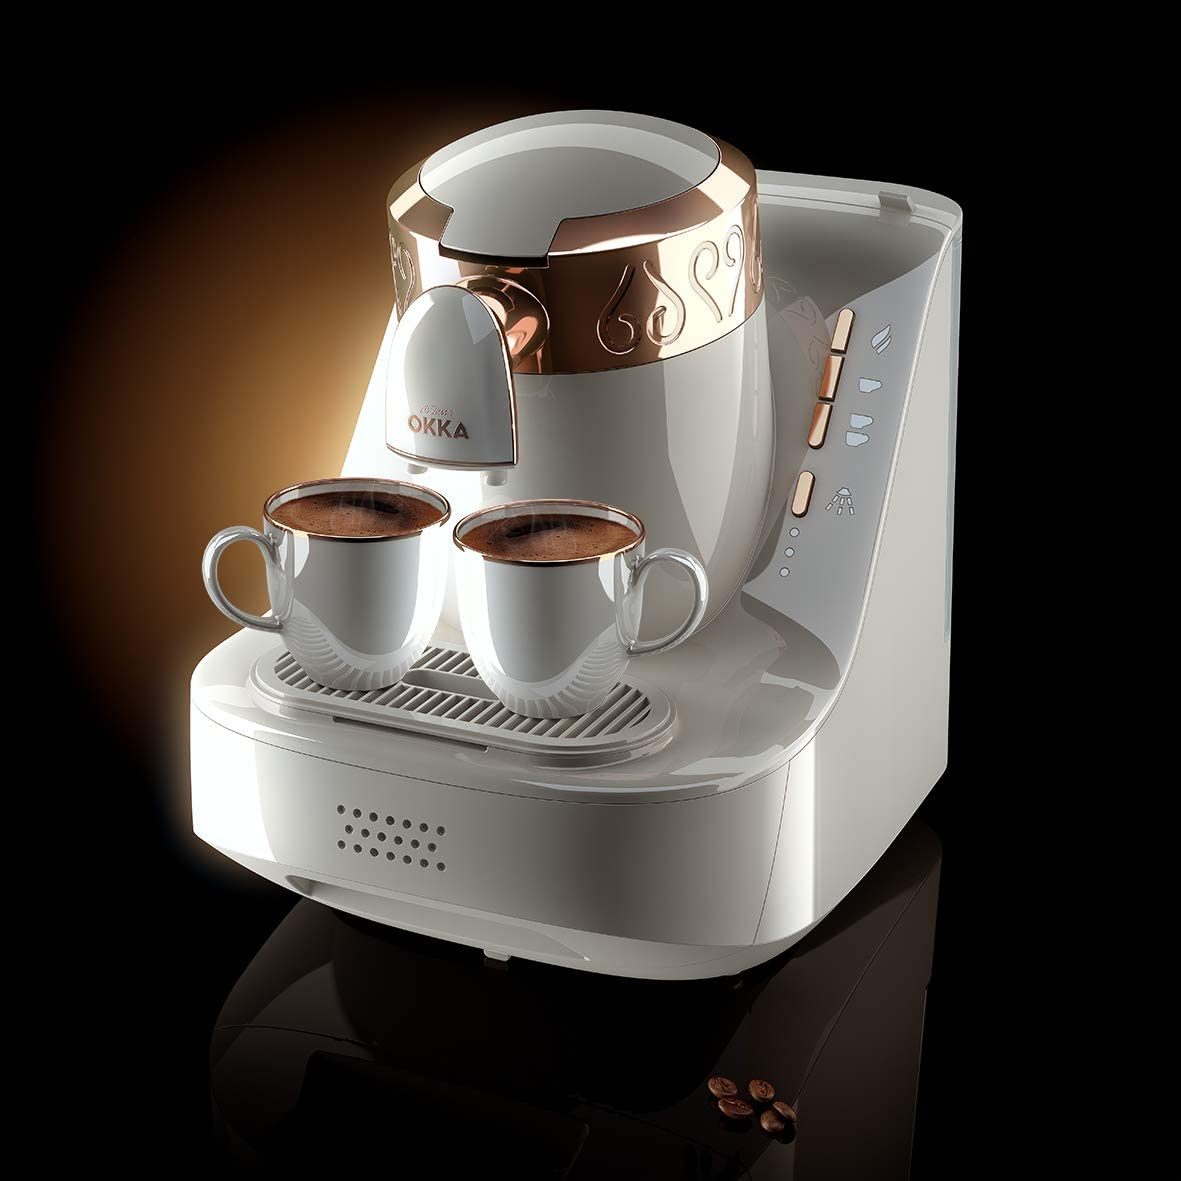 Arzum Okka OK001W 120V Turkish/Greek Coffee Machine, White/Copper (Gold)